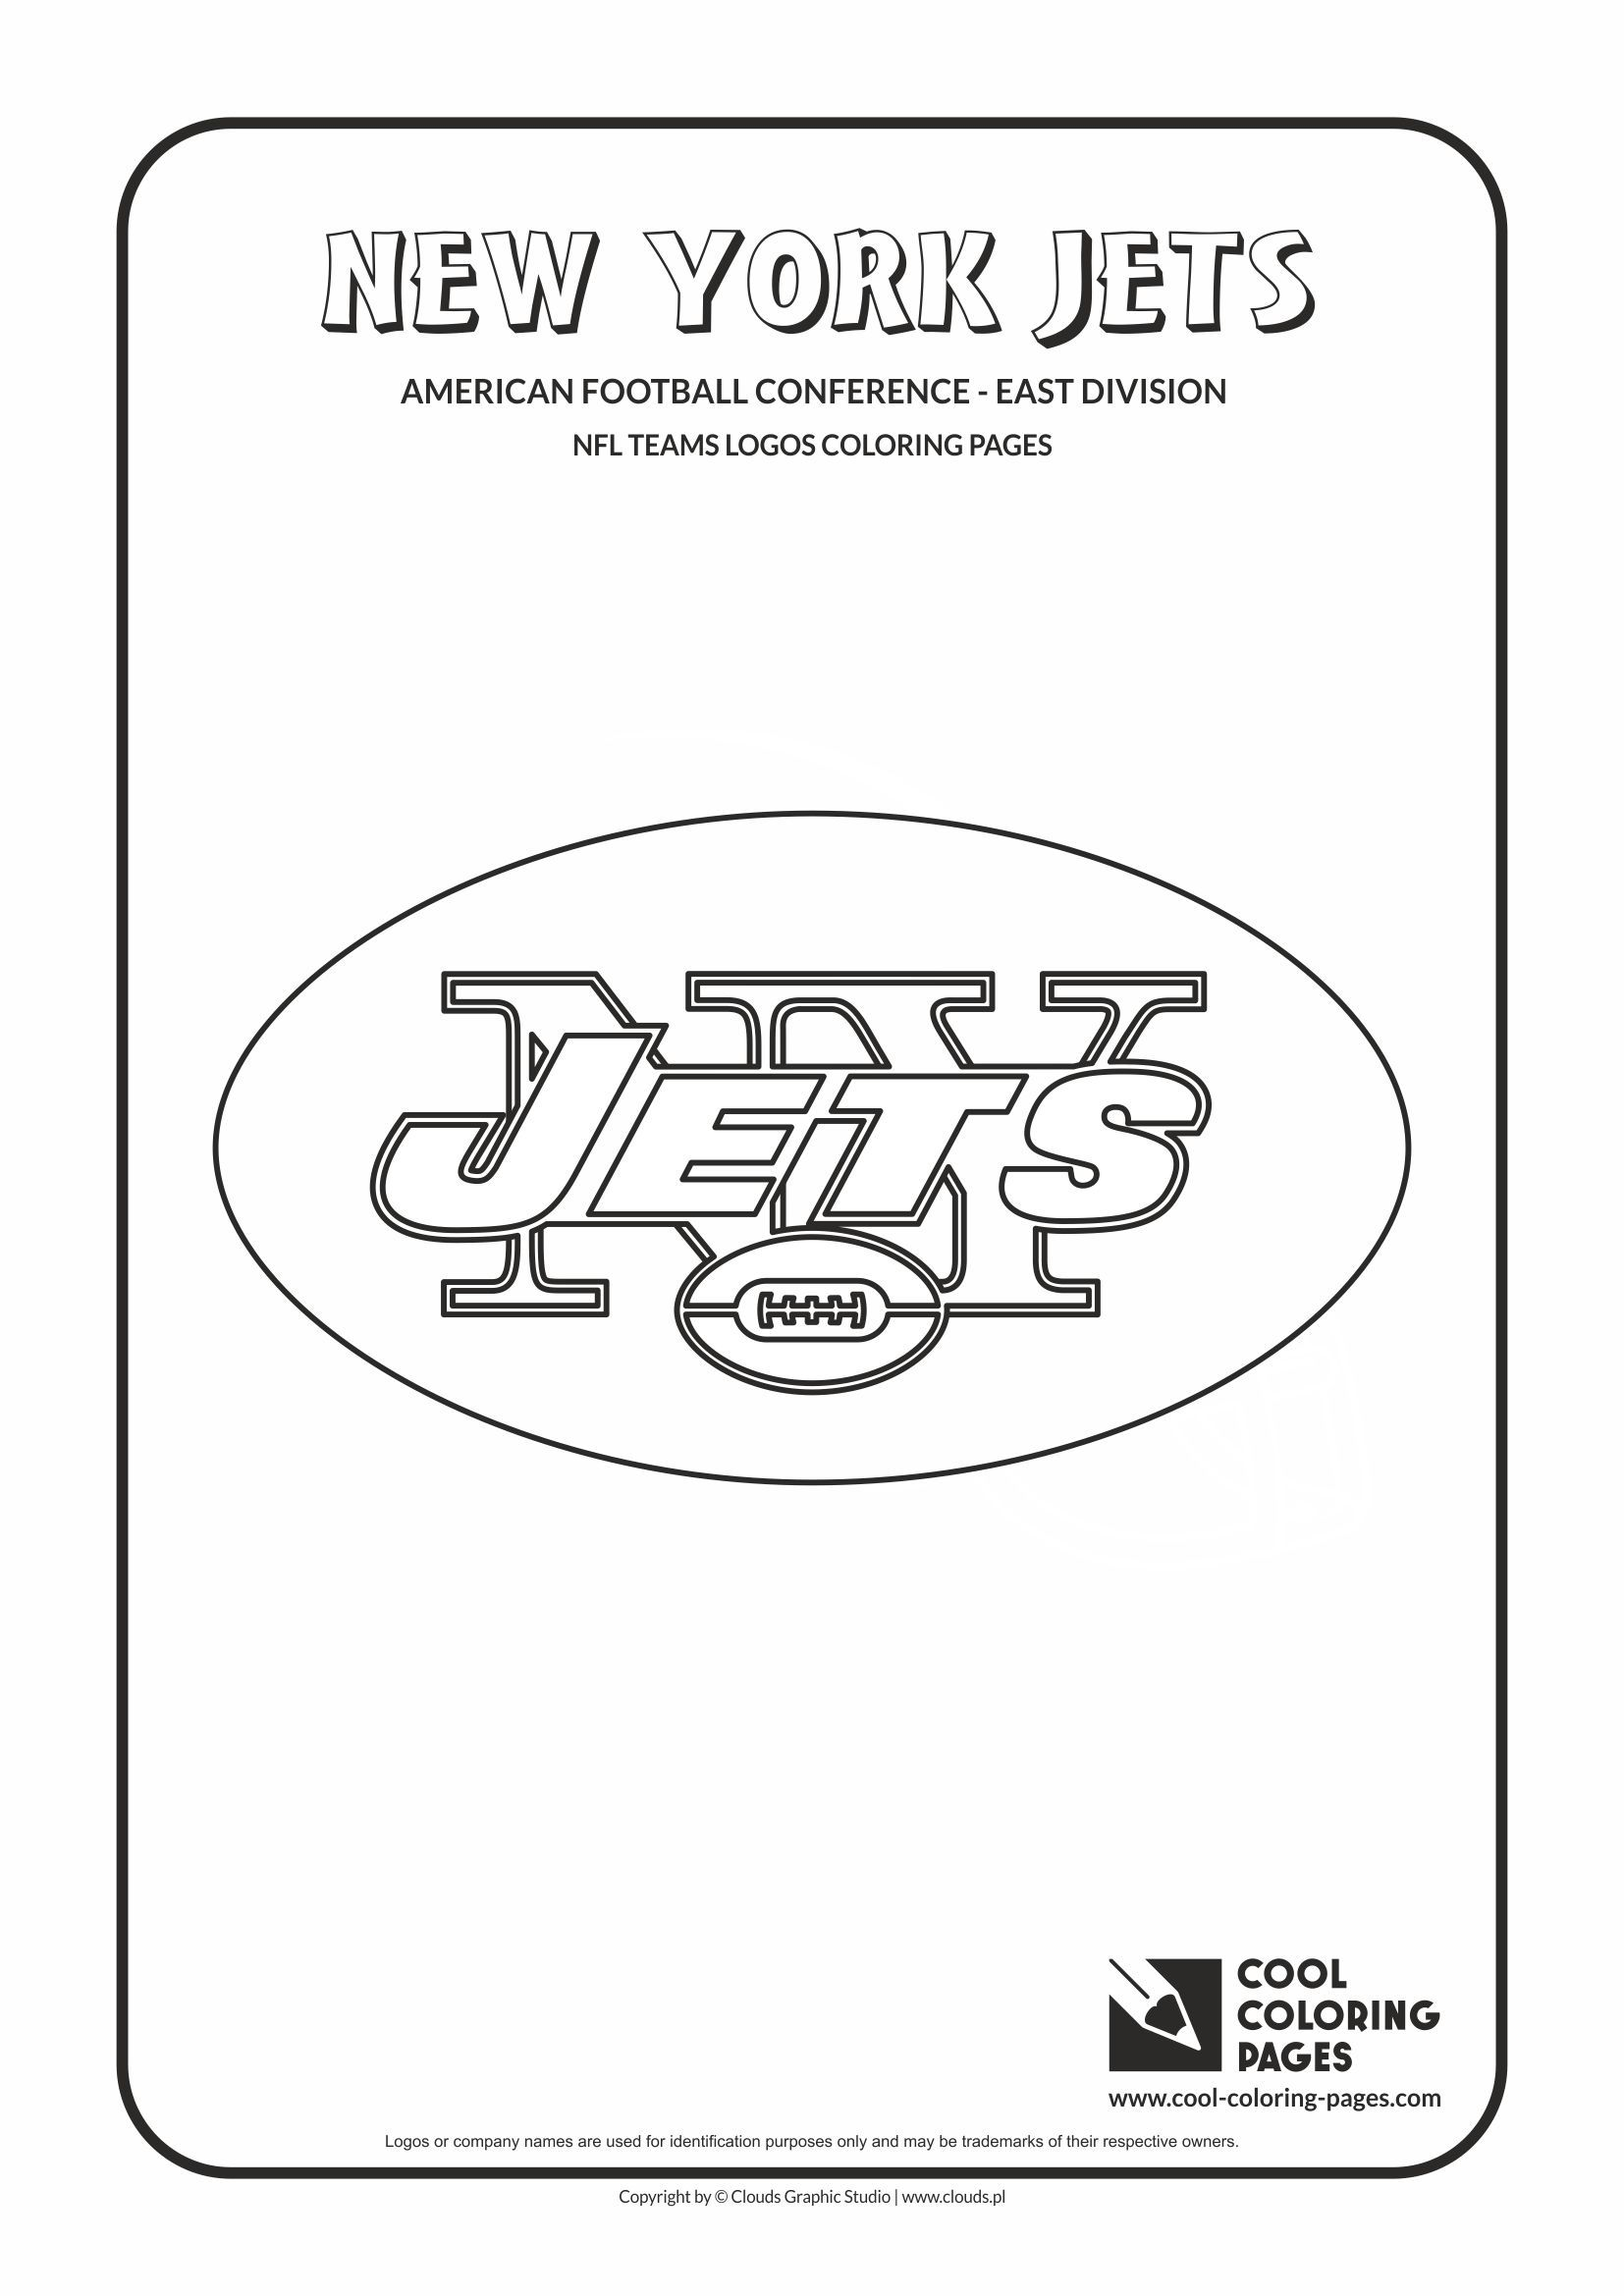 New York Jets Nfl American Football Teams Logos Coloring Pages